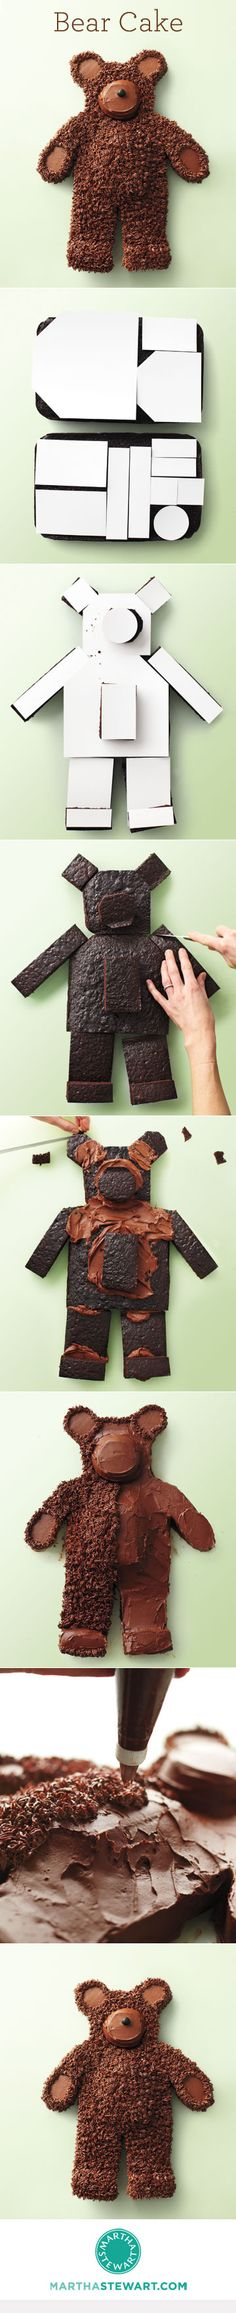 How to Make a Bear Cake.... May need this for the grands someday